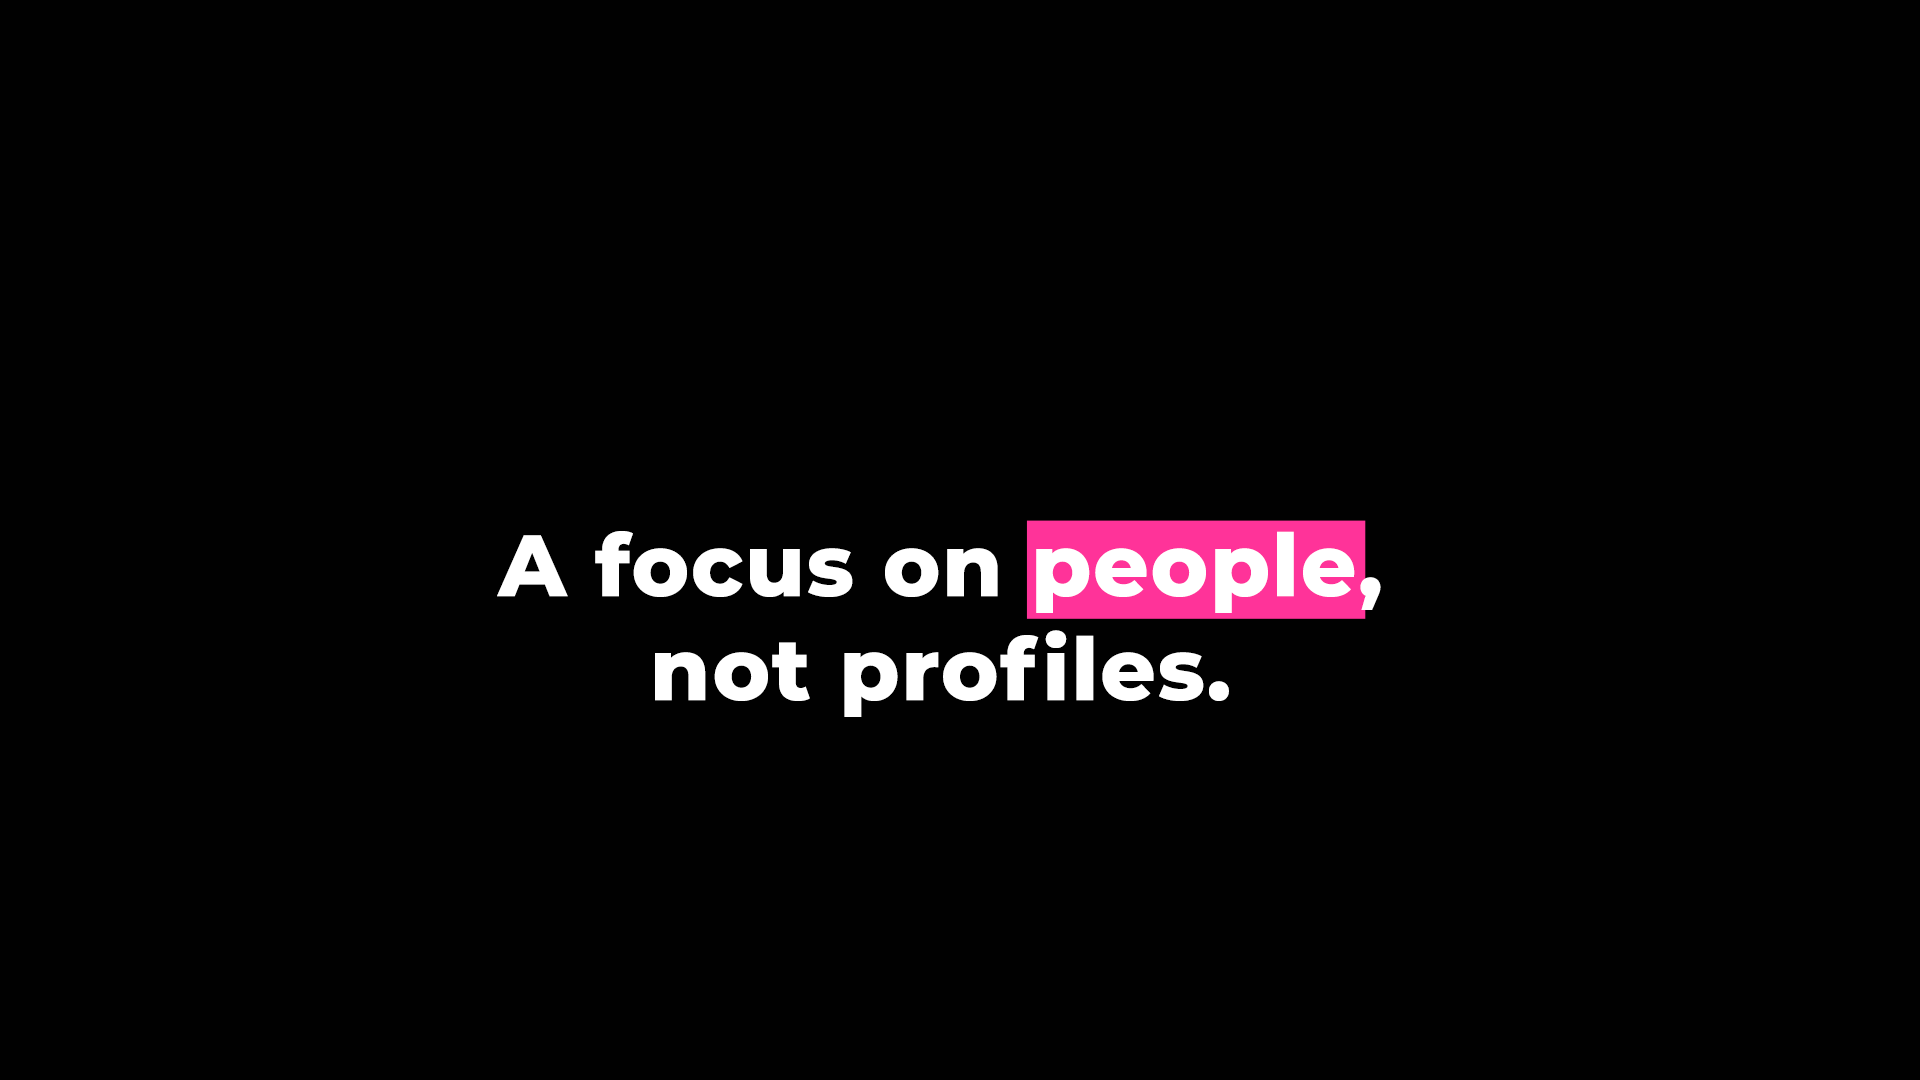 PEOPLE-NOT-PROFILES